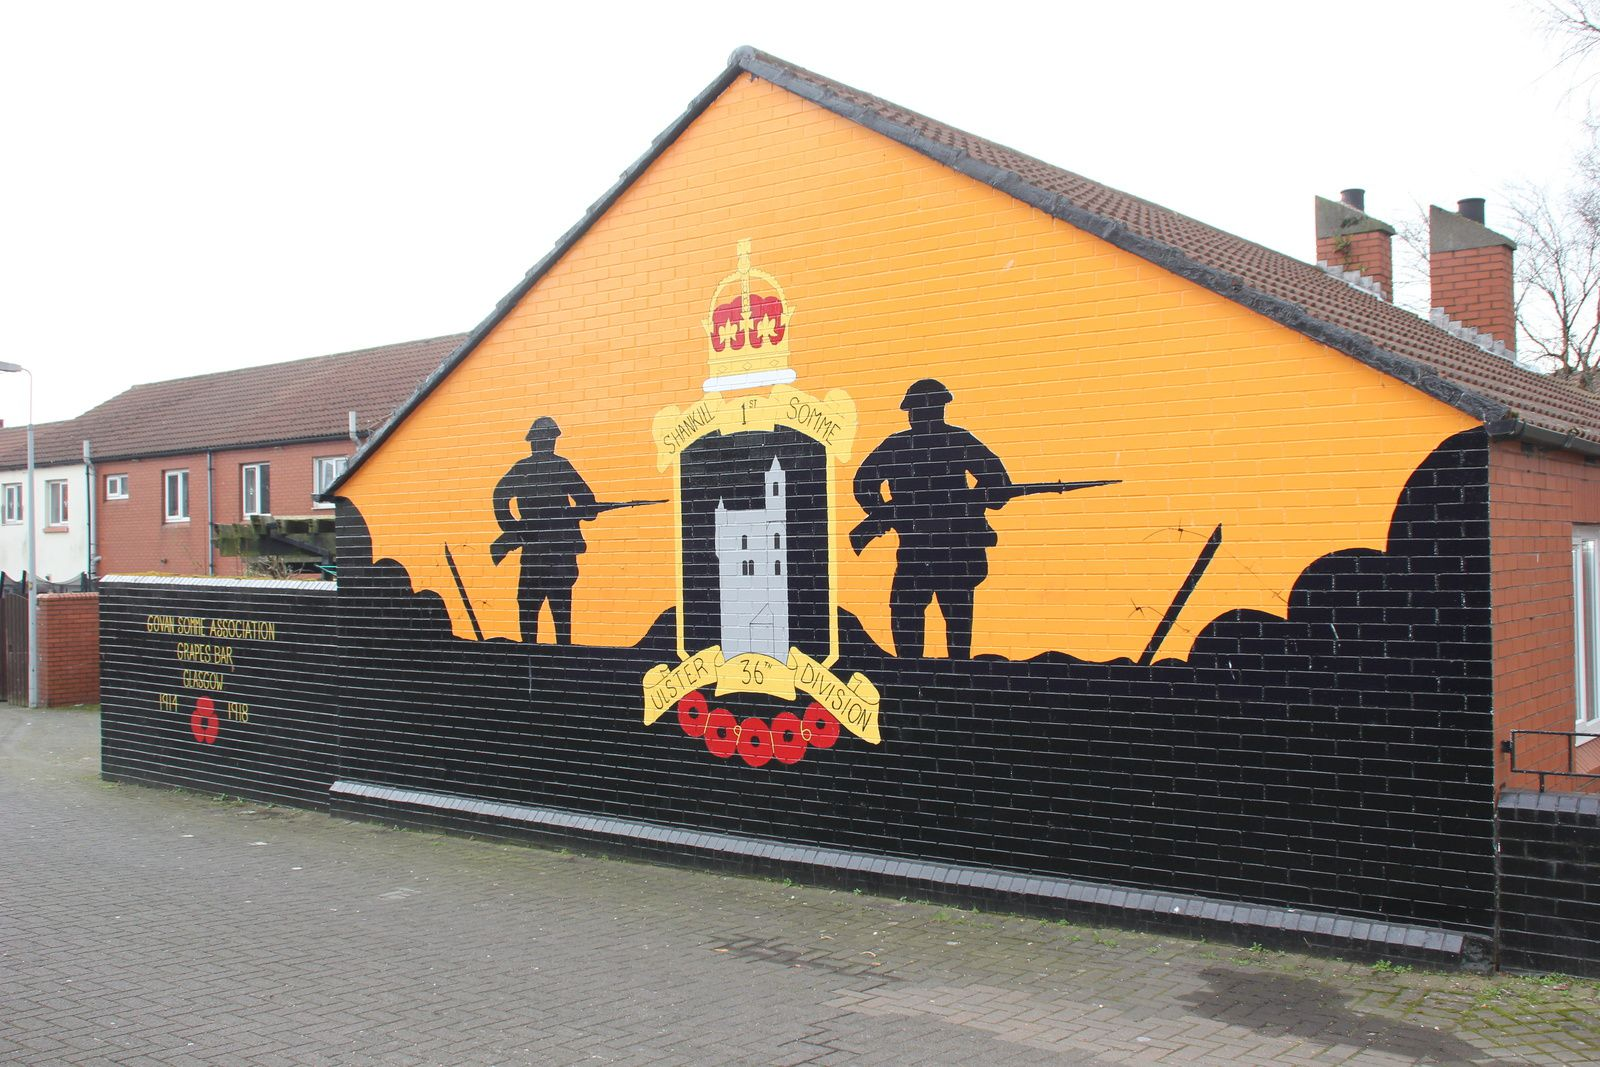 520) Conway Way, West Belfast